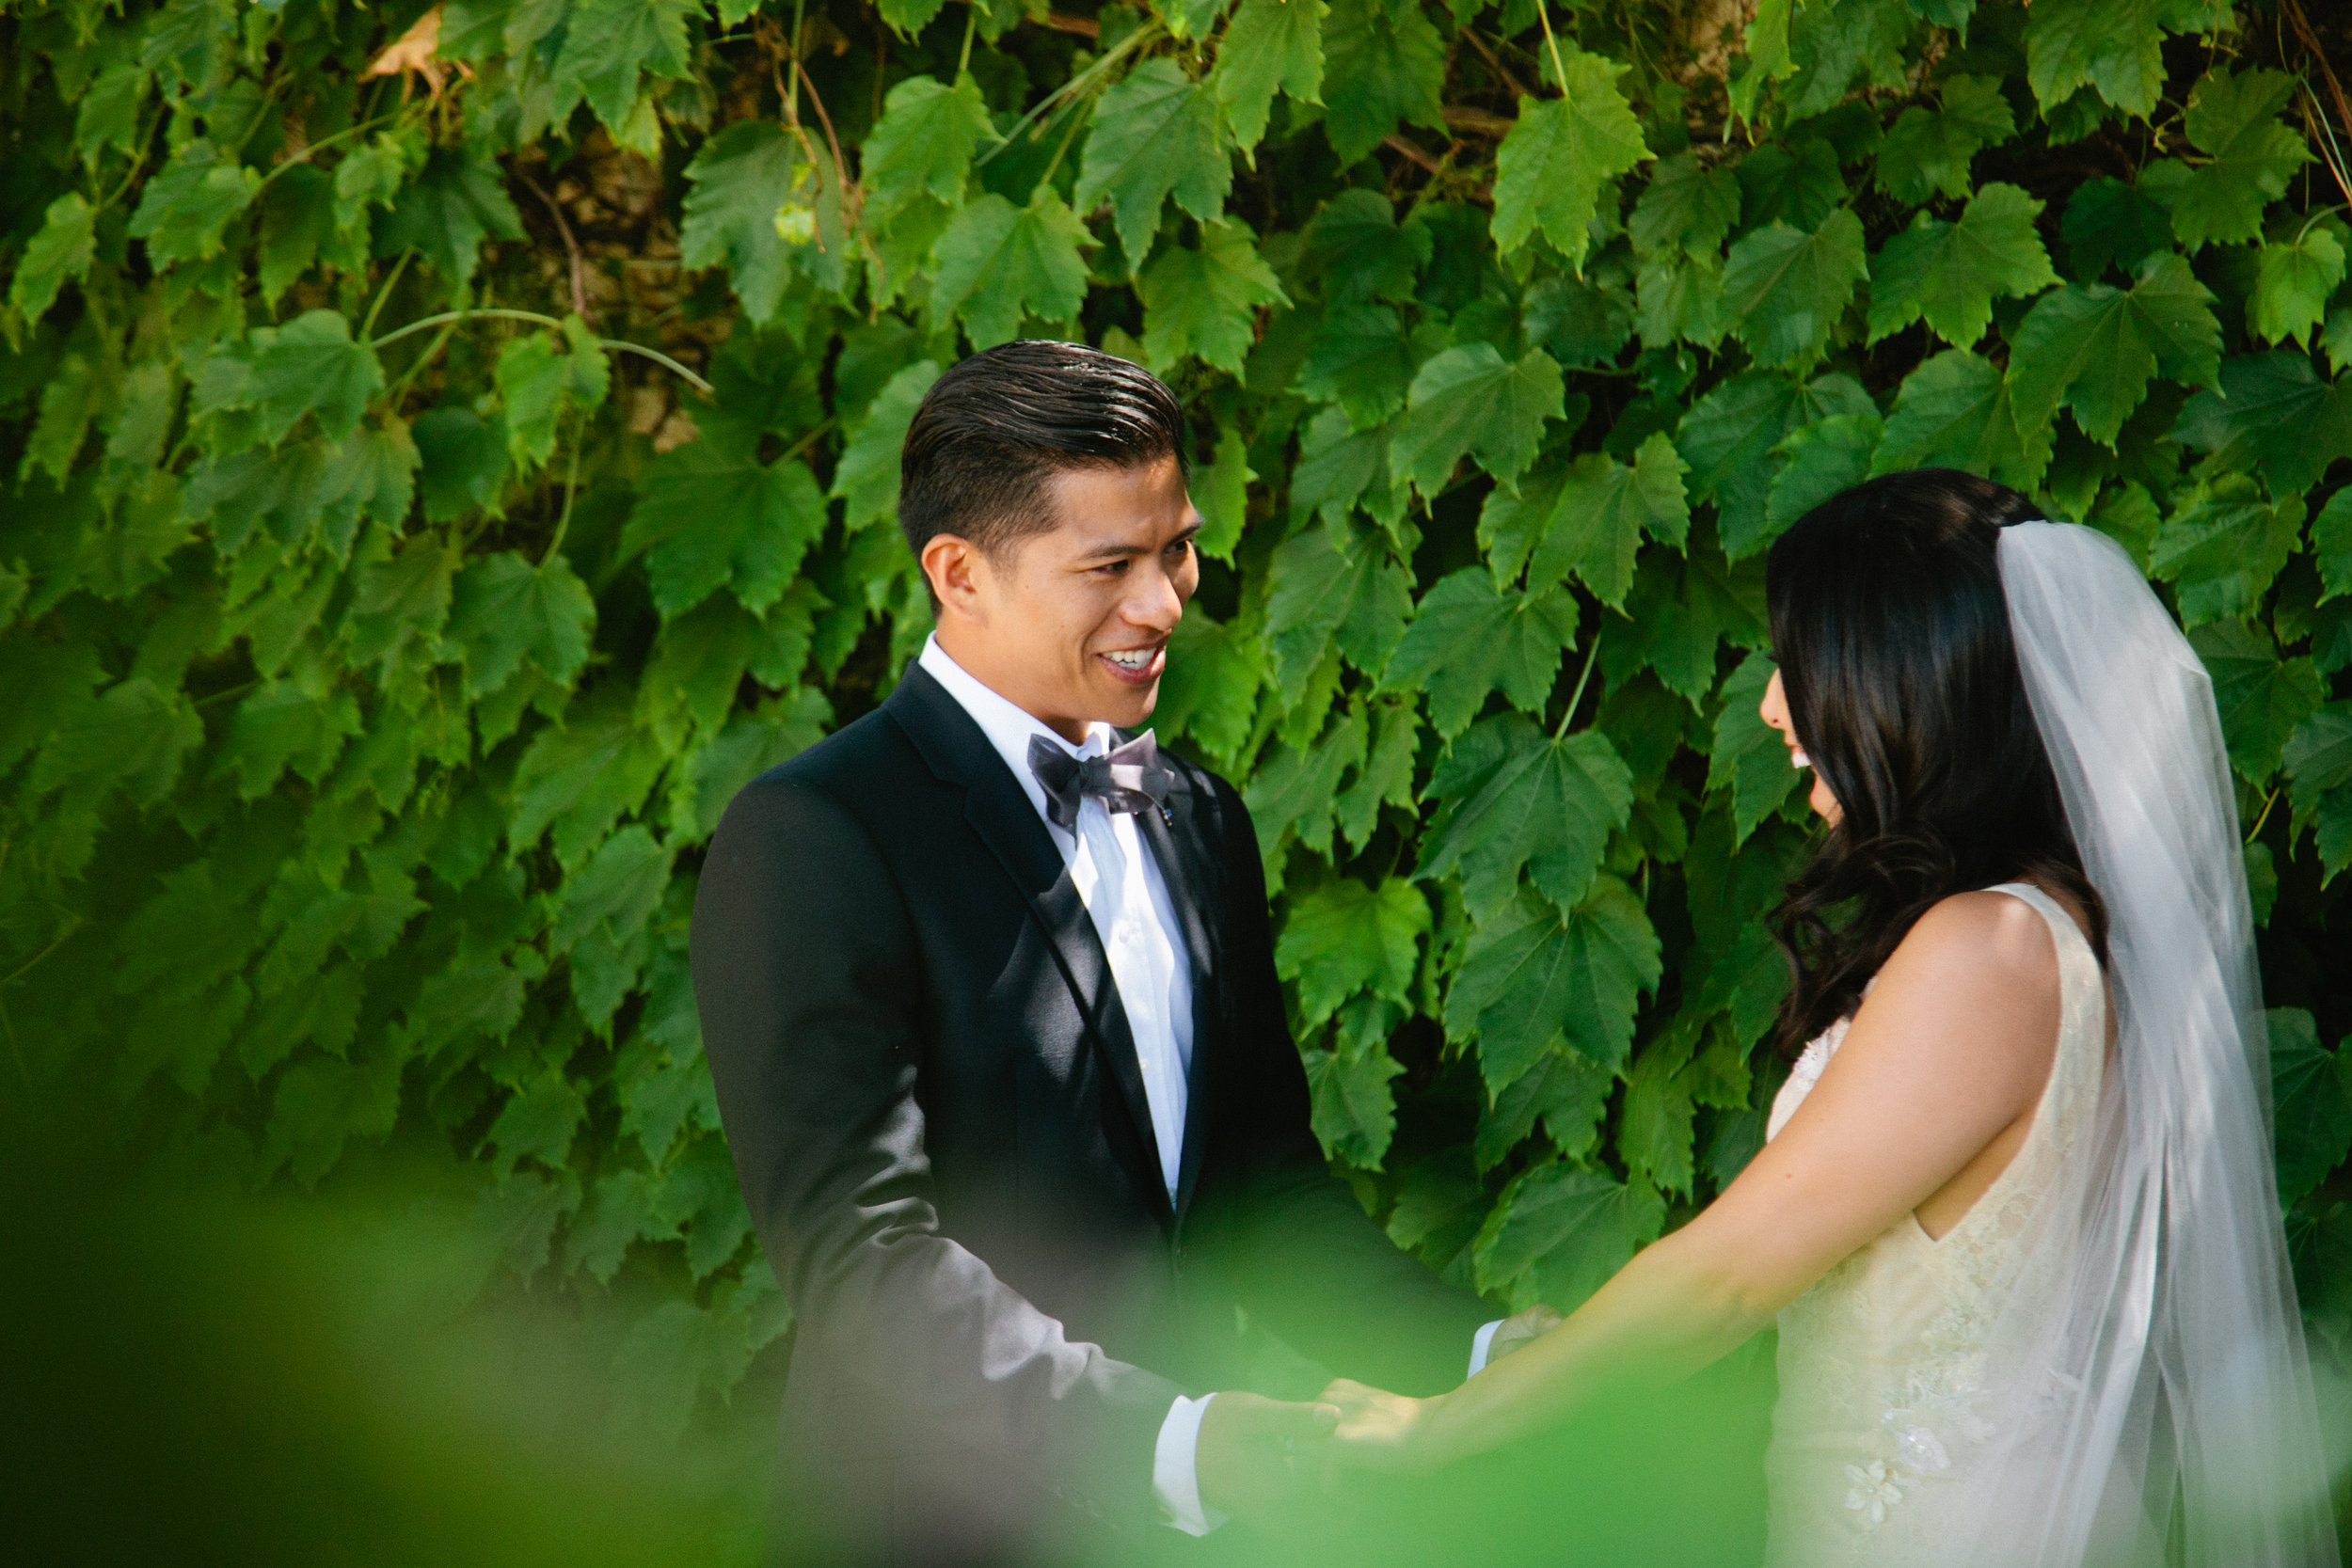 California Wedding Photographer Elopement Travel Destination Napa Valley Elope Couple Photography Lifestyle Candid Photojournalism Artistic Creative Bohemian Romantic Real First Look